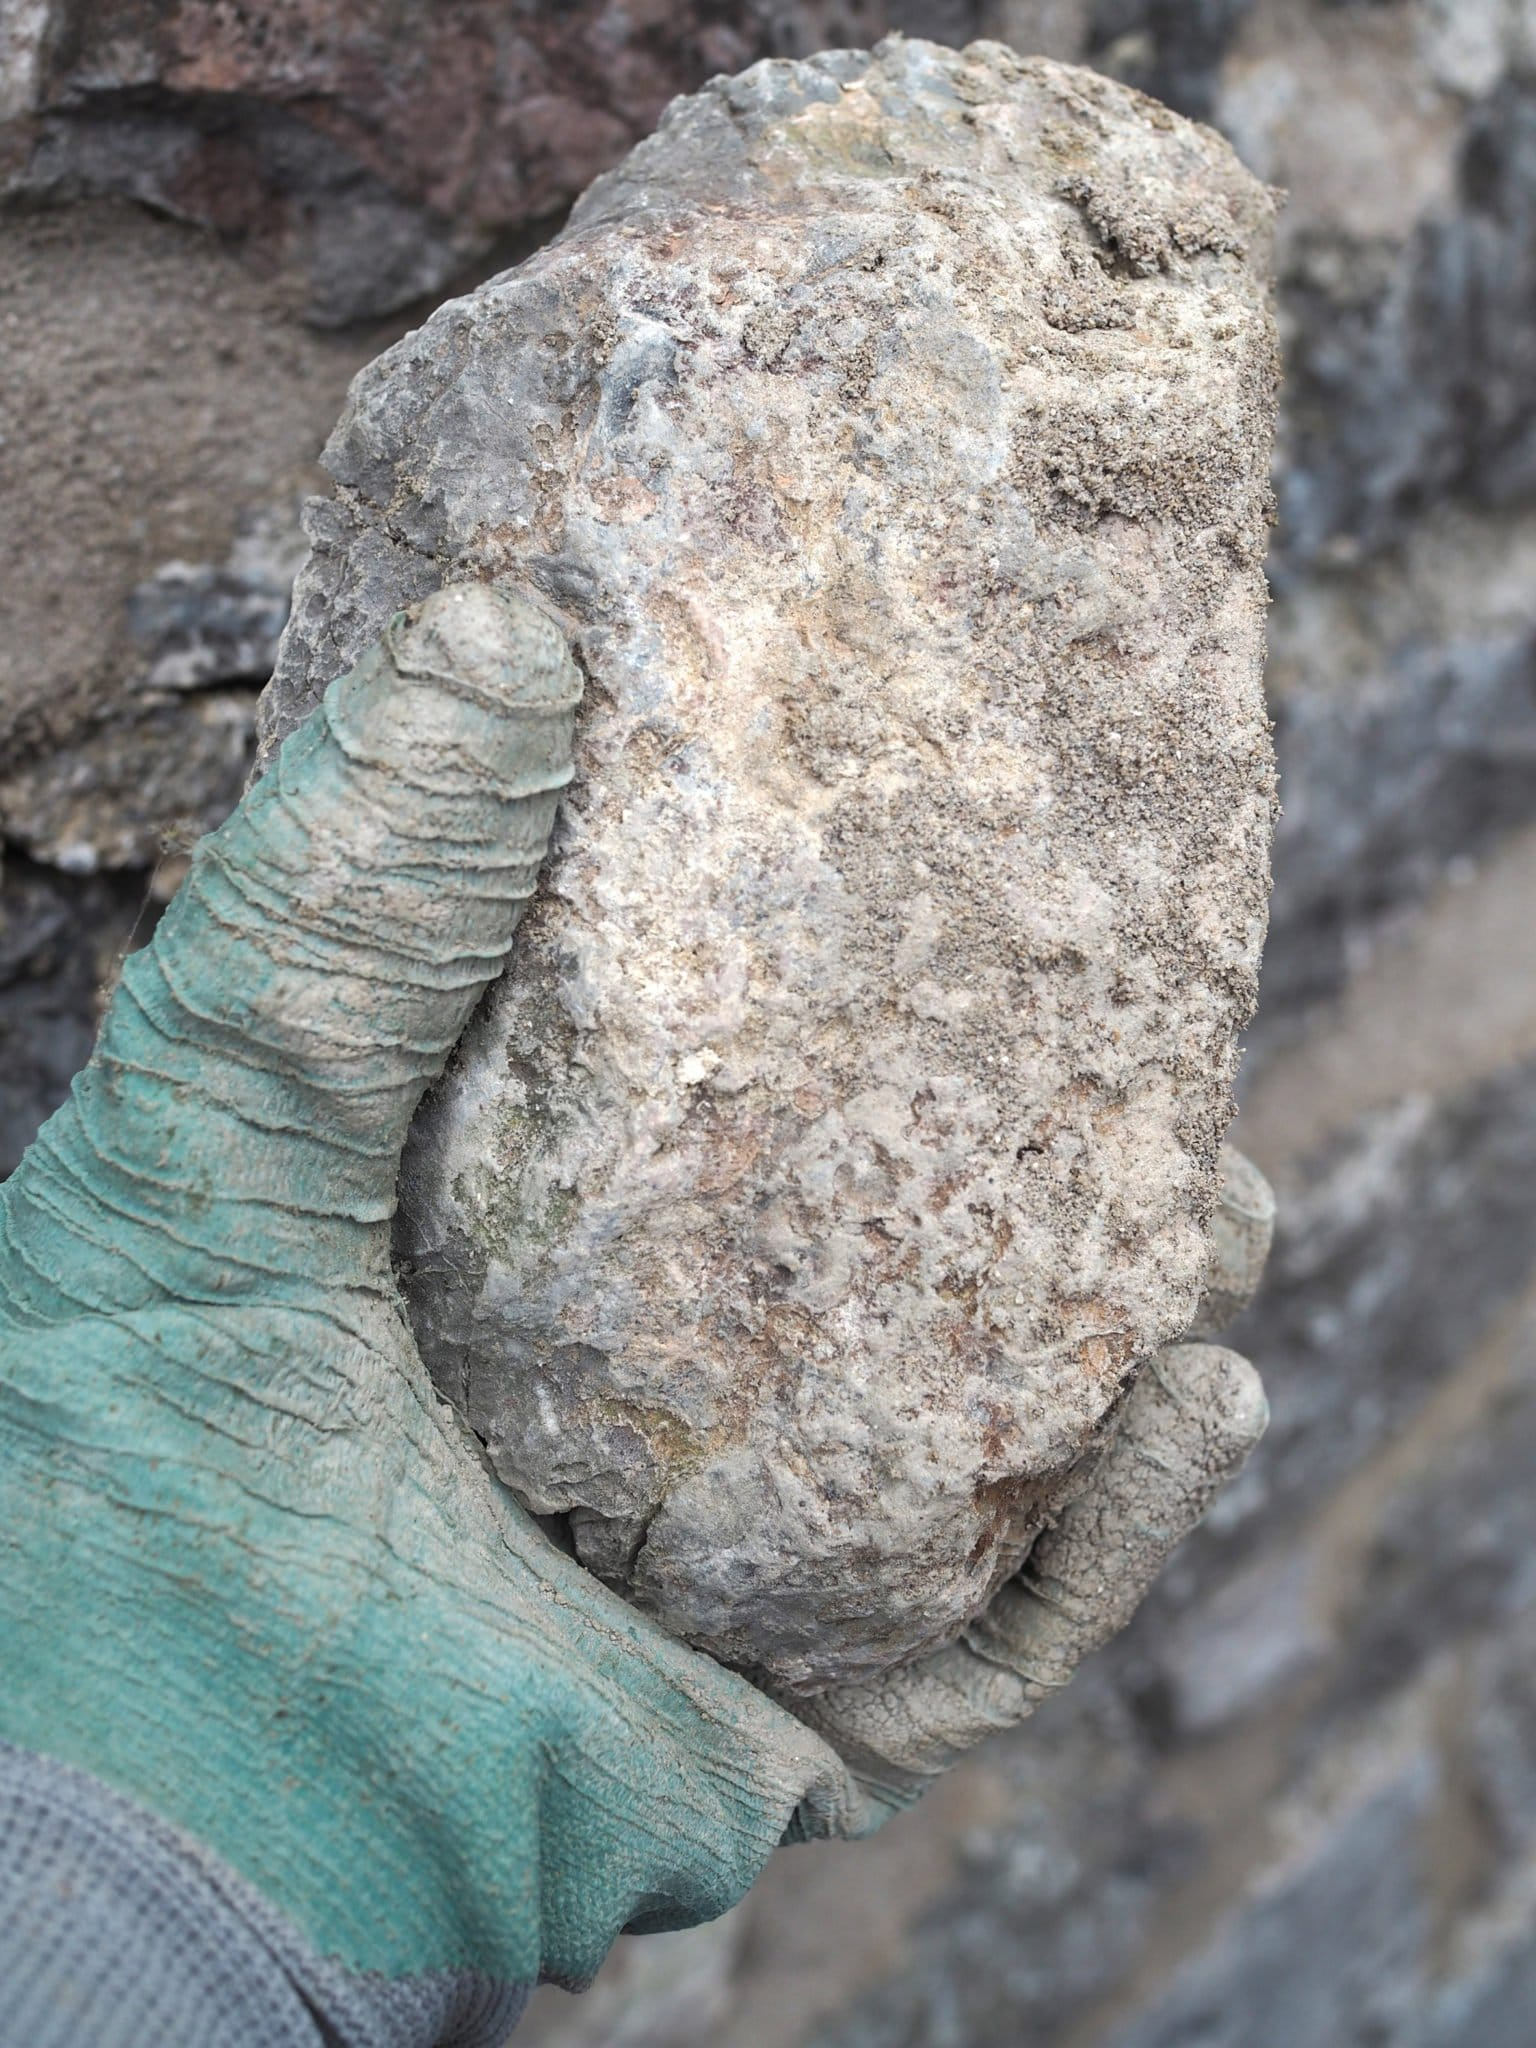 Put aside loose stones when repointing a wall